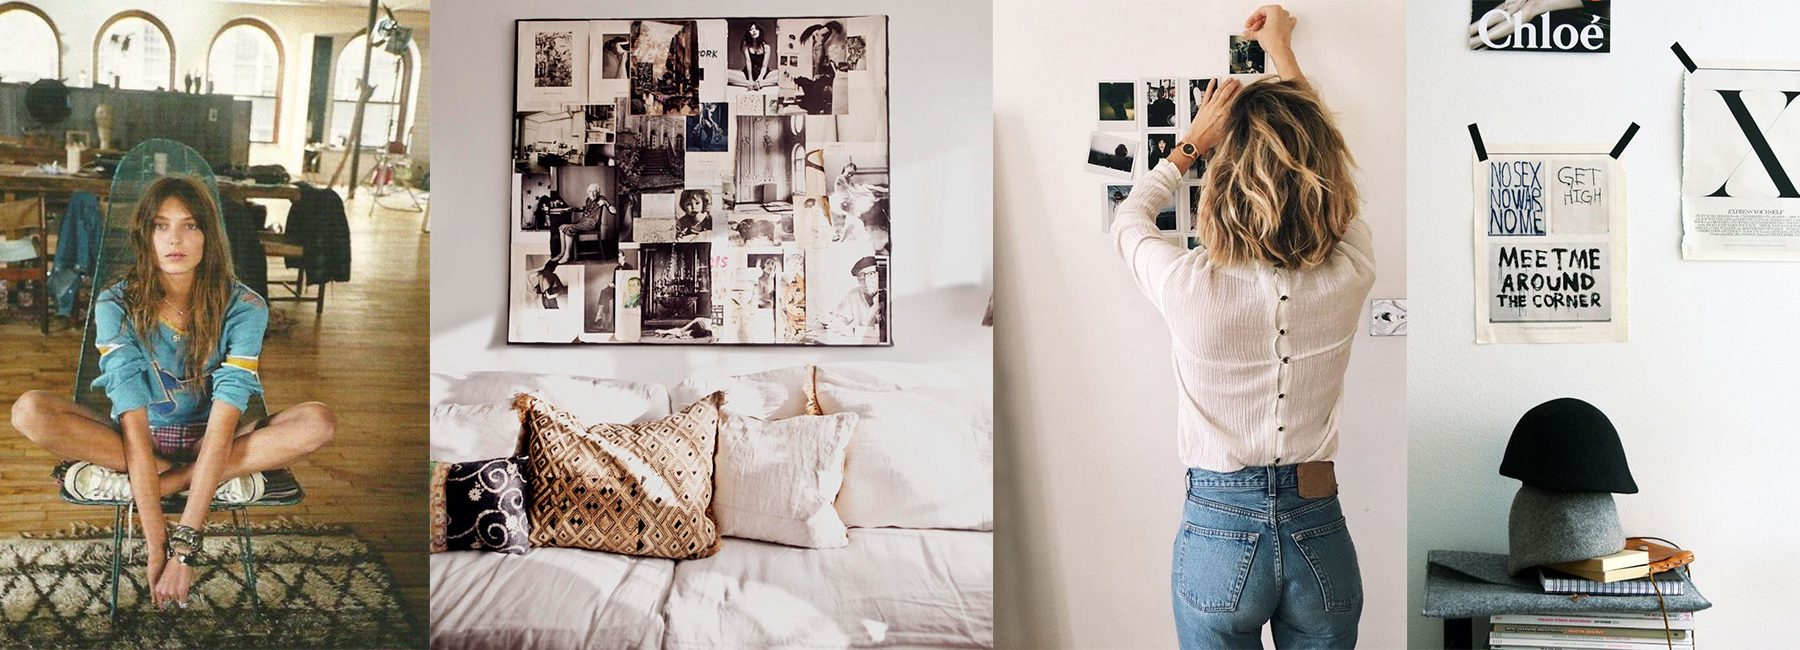 TRES CHIC: MOVING OUT ON A BUDGET